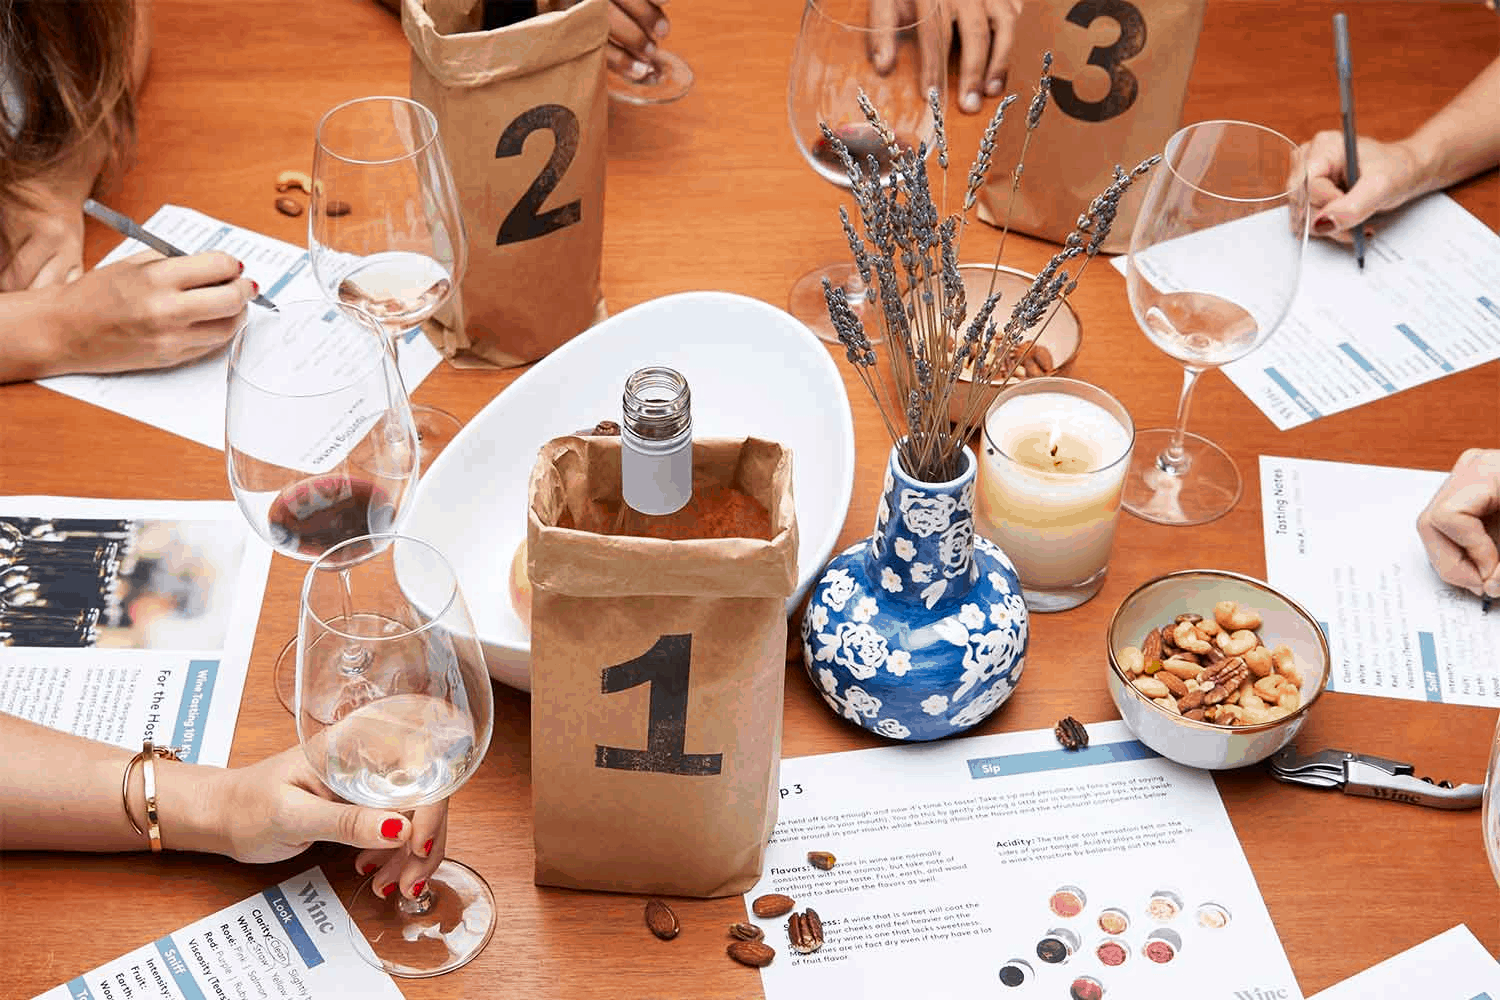 Winc Deal: Get $25 Off Your First Box!